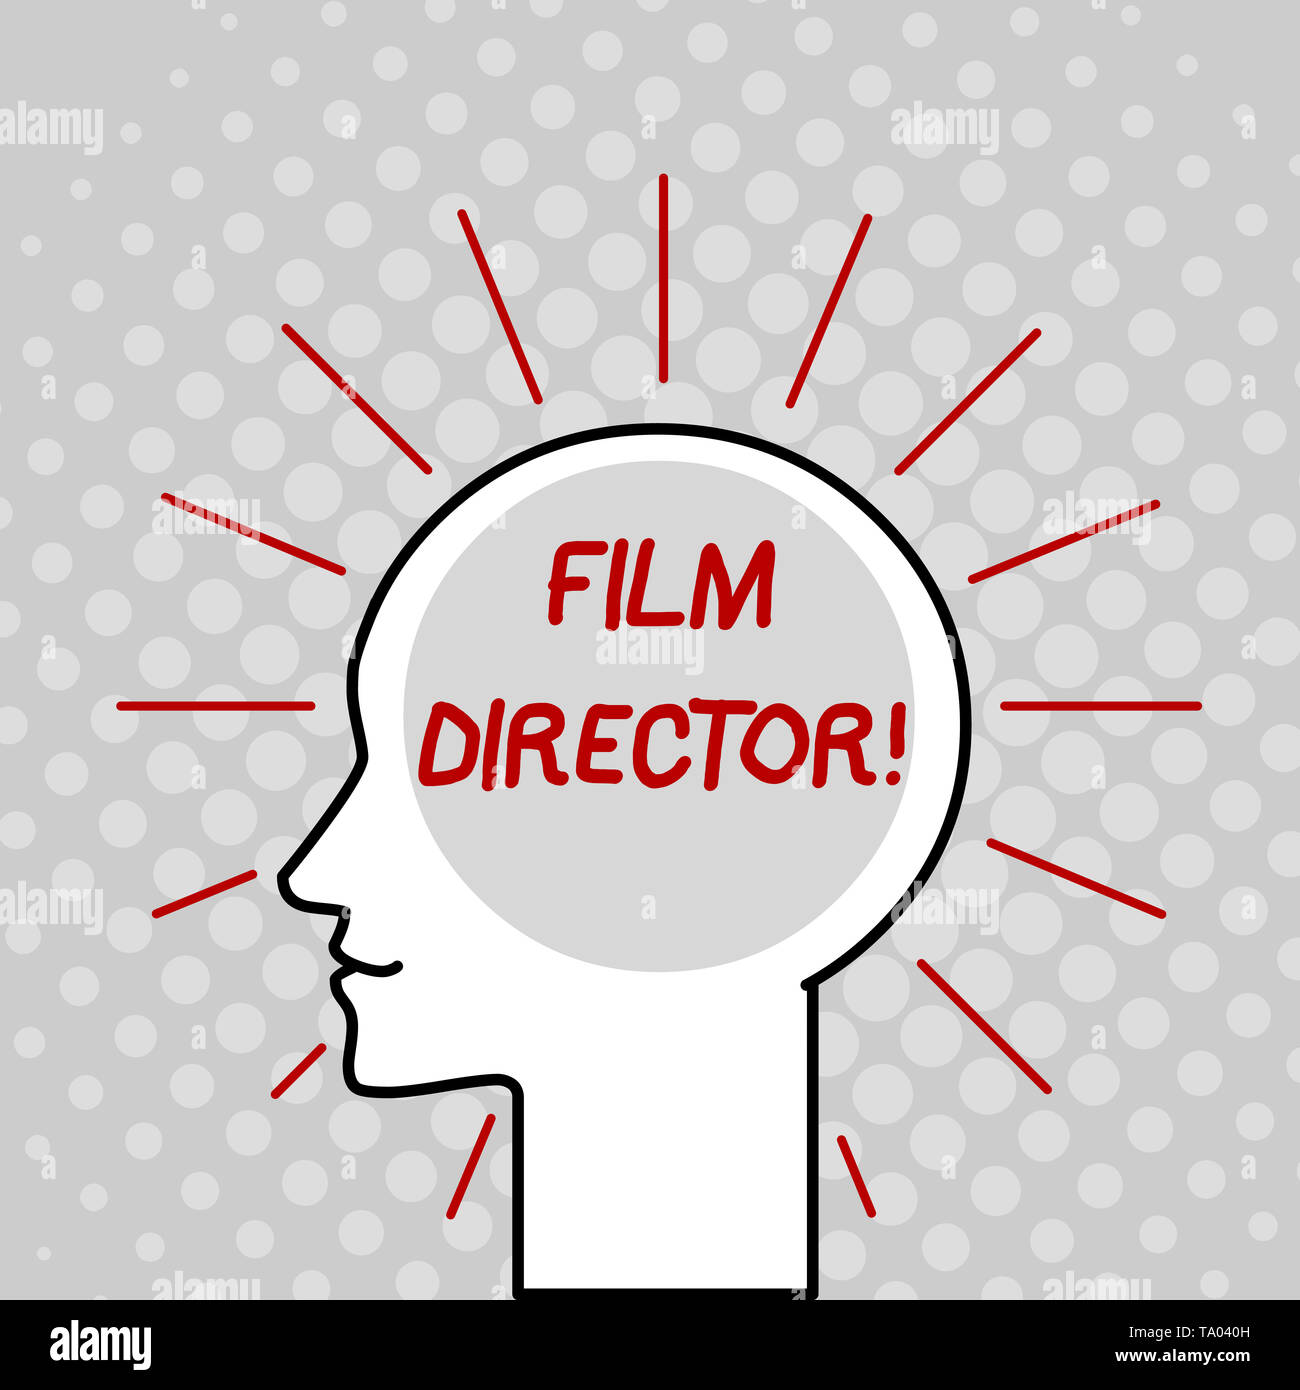 Writing note showing Film Director. Business concept for a demonstrating who is in charge of making and directing a film Outline Silhouette Human Head - Stock Image